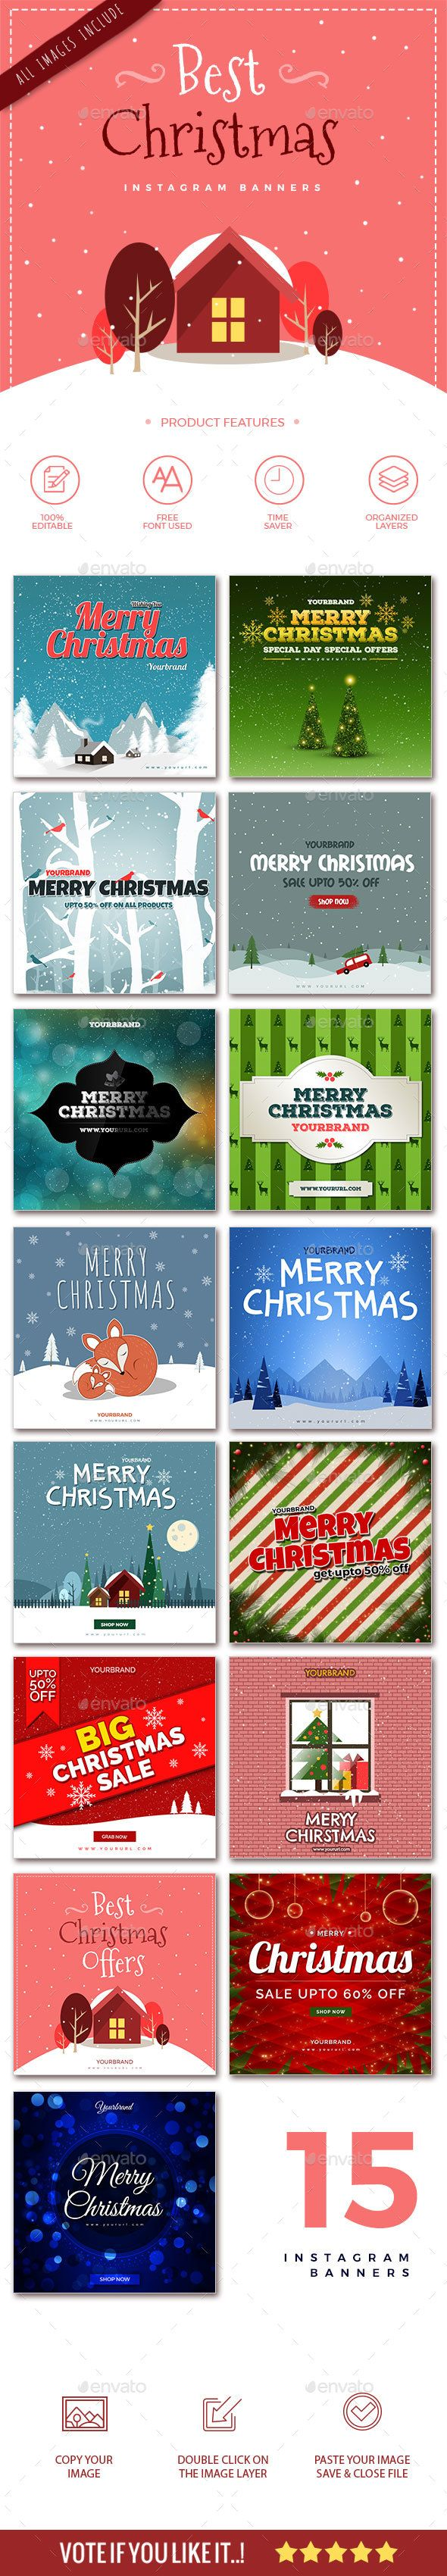 15 Christmas Instagram Banners - Social Media Web Elements box, bundle, business, celebration, christmas, clothes, color, cover, discounts, facebook, facebook cover, facebook fashion, image, image banner, instagram, link, link banner, New Year's Eve, offers, profile, retro, sales, season's greetings, shop online, social media, special price, timeline, timeline cover, web